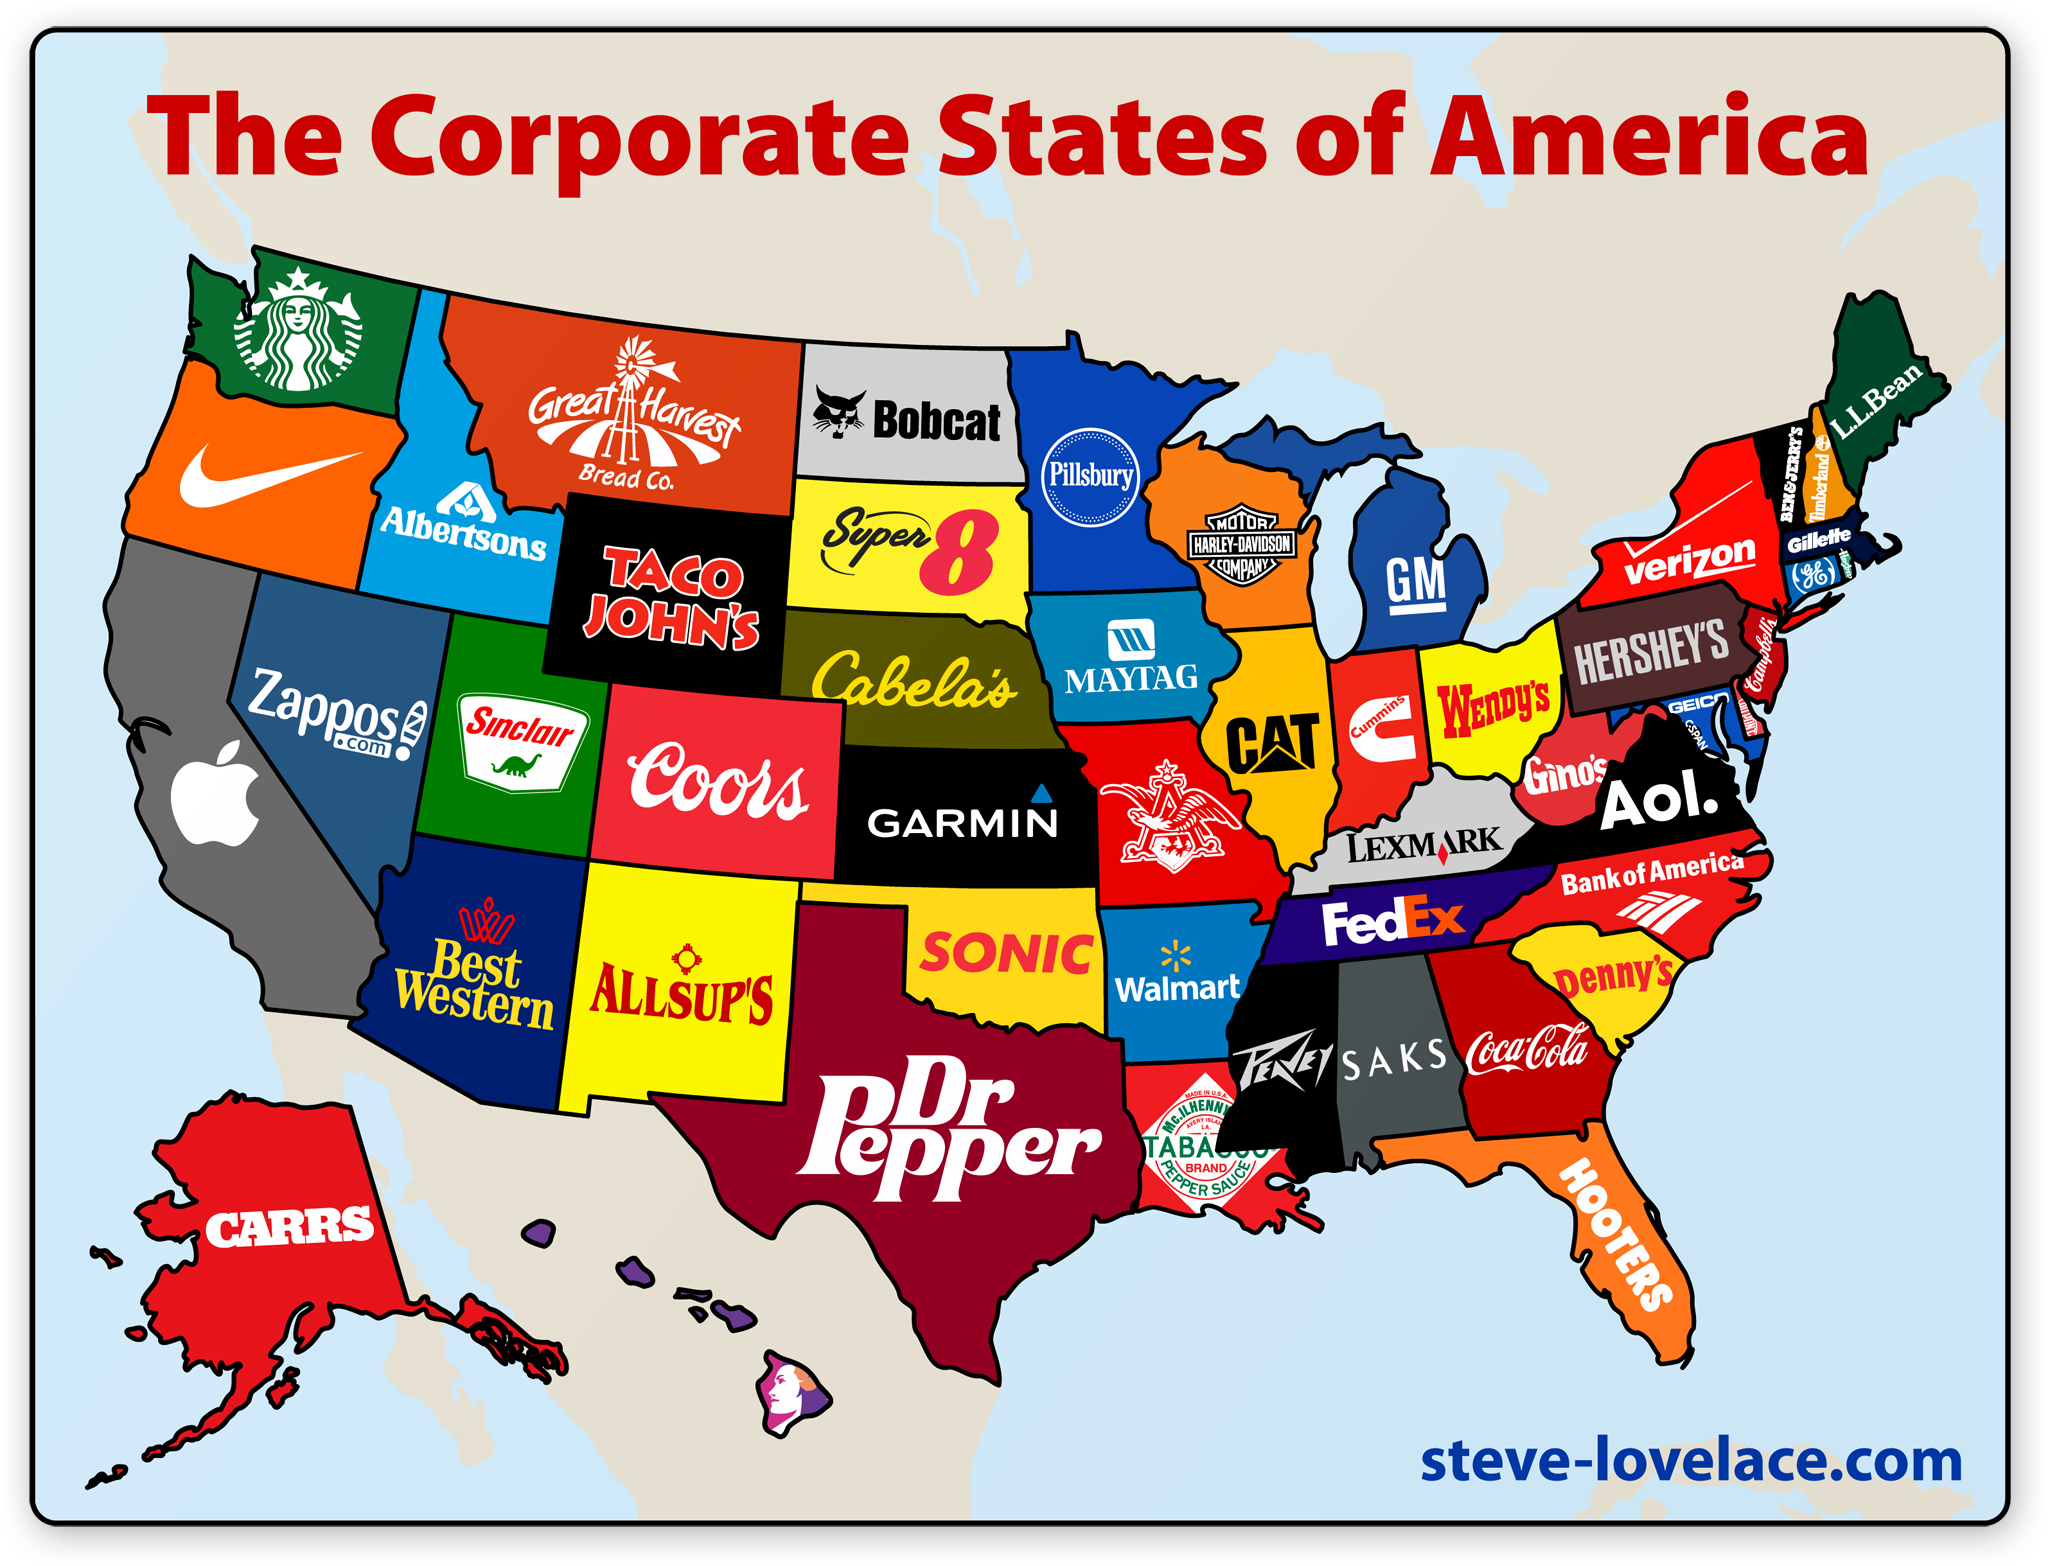 The most popular brand in each state